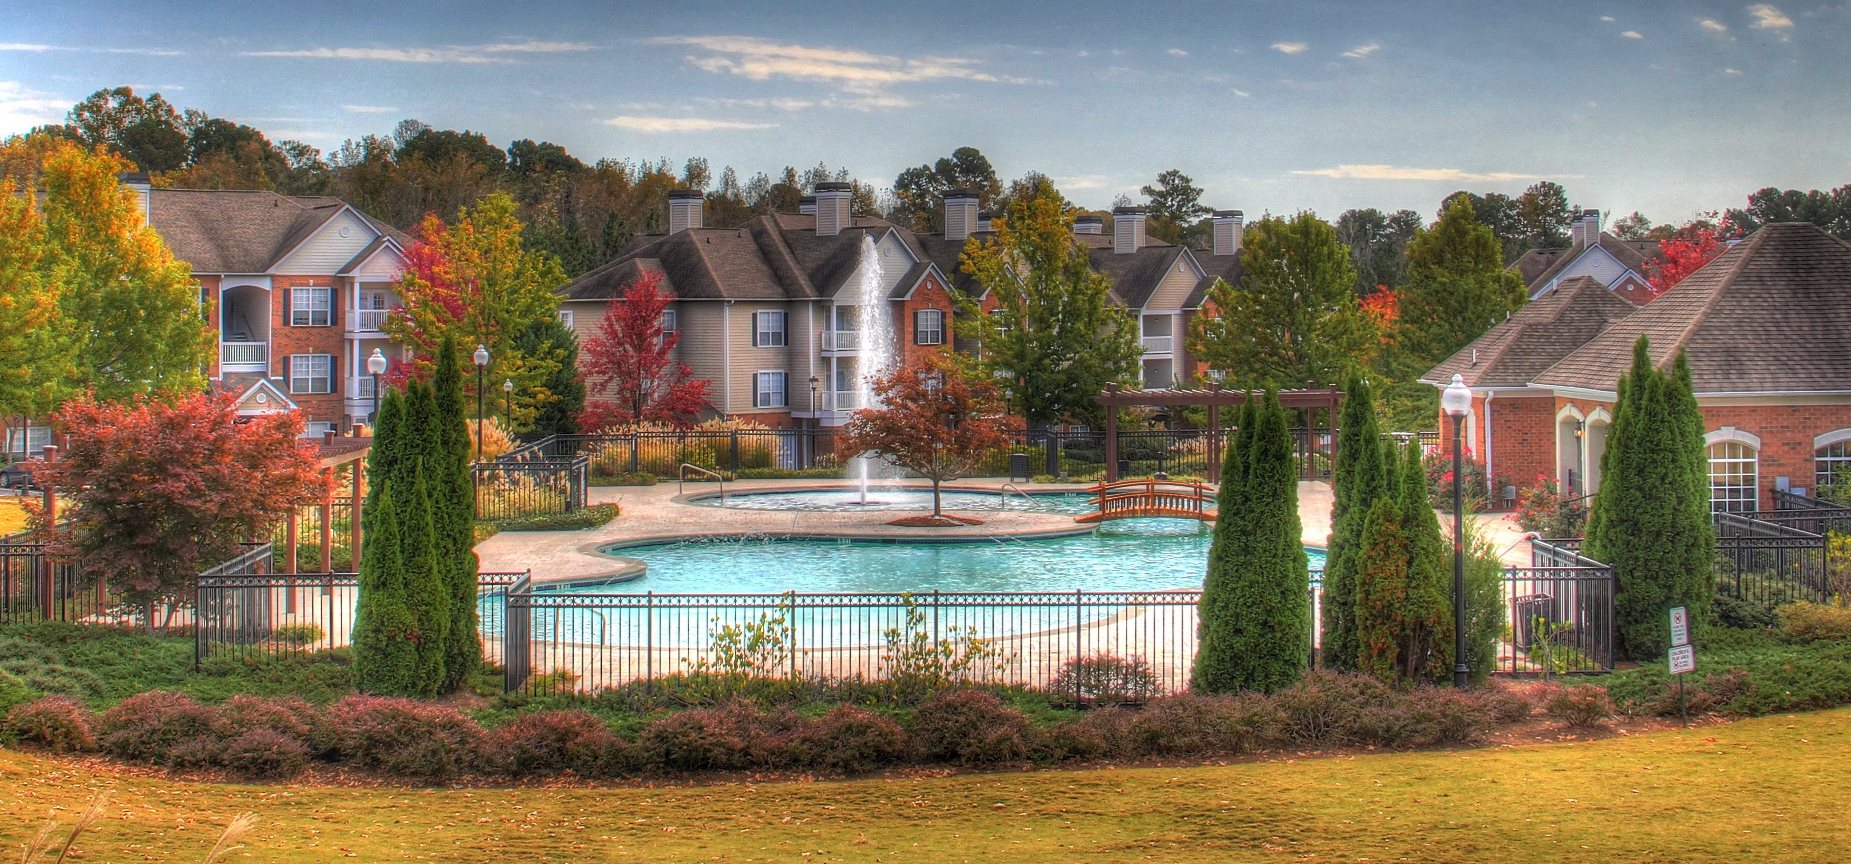 The Crest at Sugarloaf | Apartments in Lawrenceville, GA